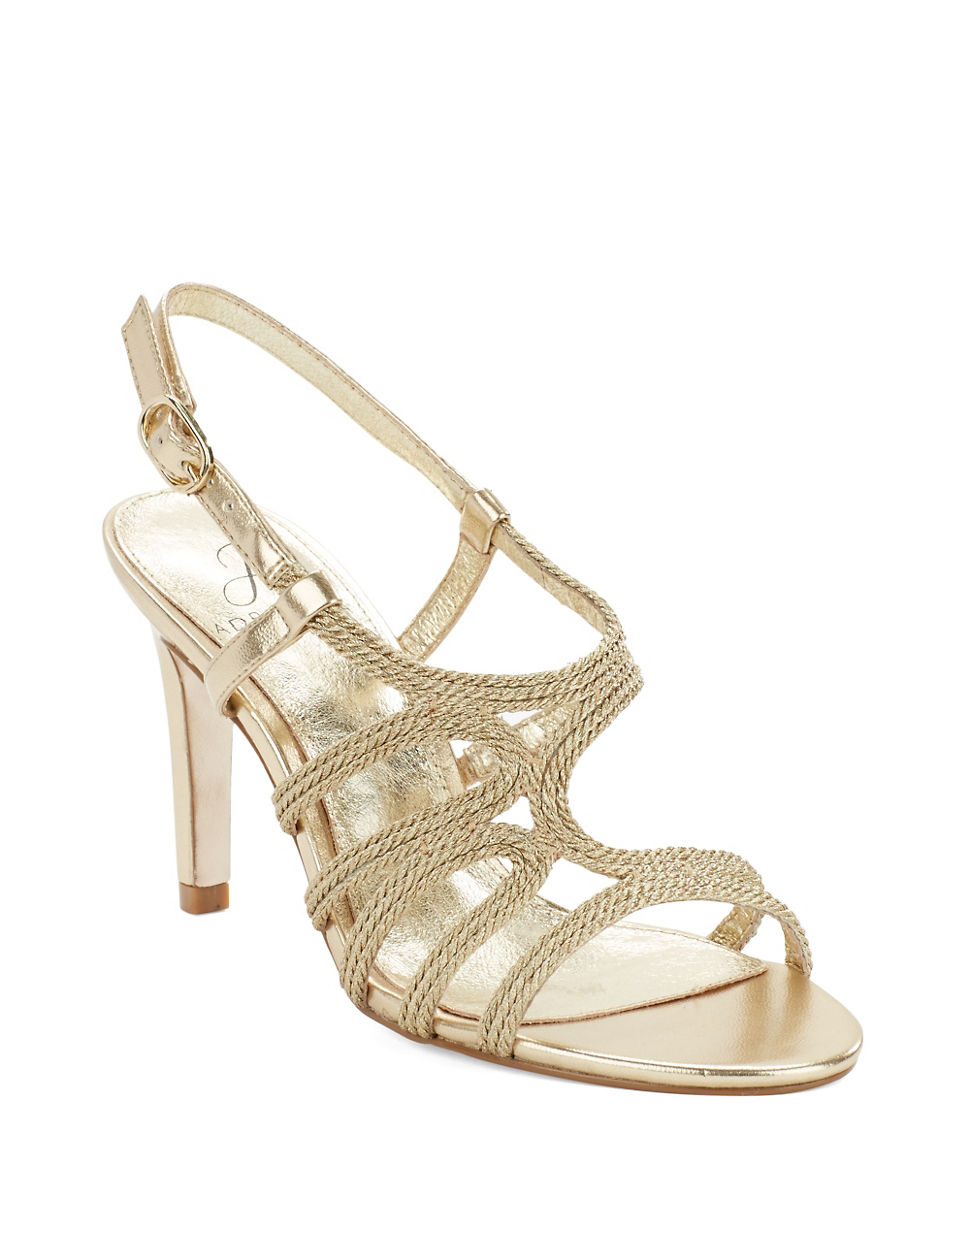 1f4761b1cb0 Lyst - Adrianna Papell Amena Open Toe Leather Rope Sandals in Metallic